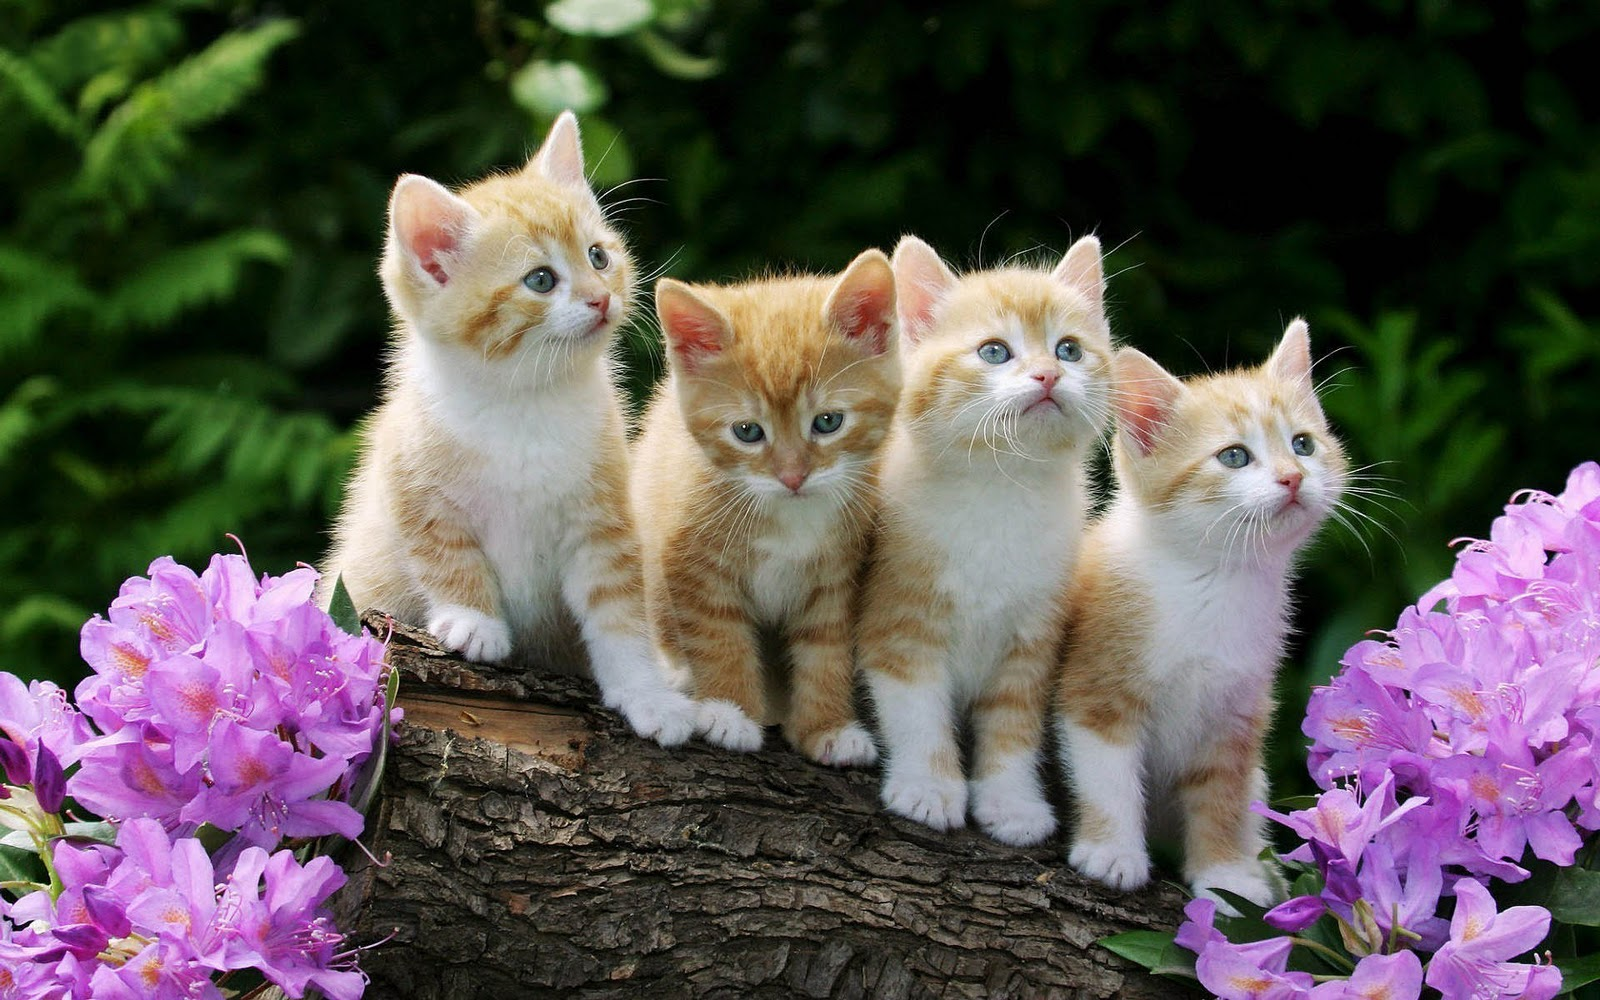 Kitten wallpaper for desktop wallpapersafari - Kitten backgrounds ...